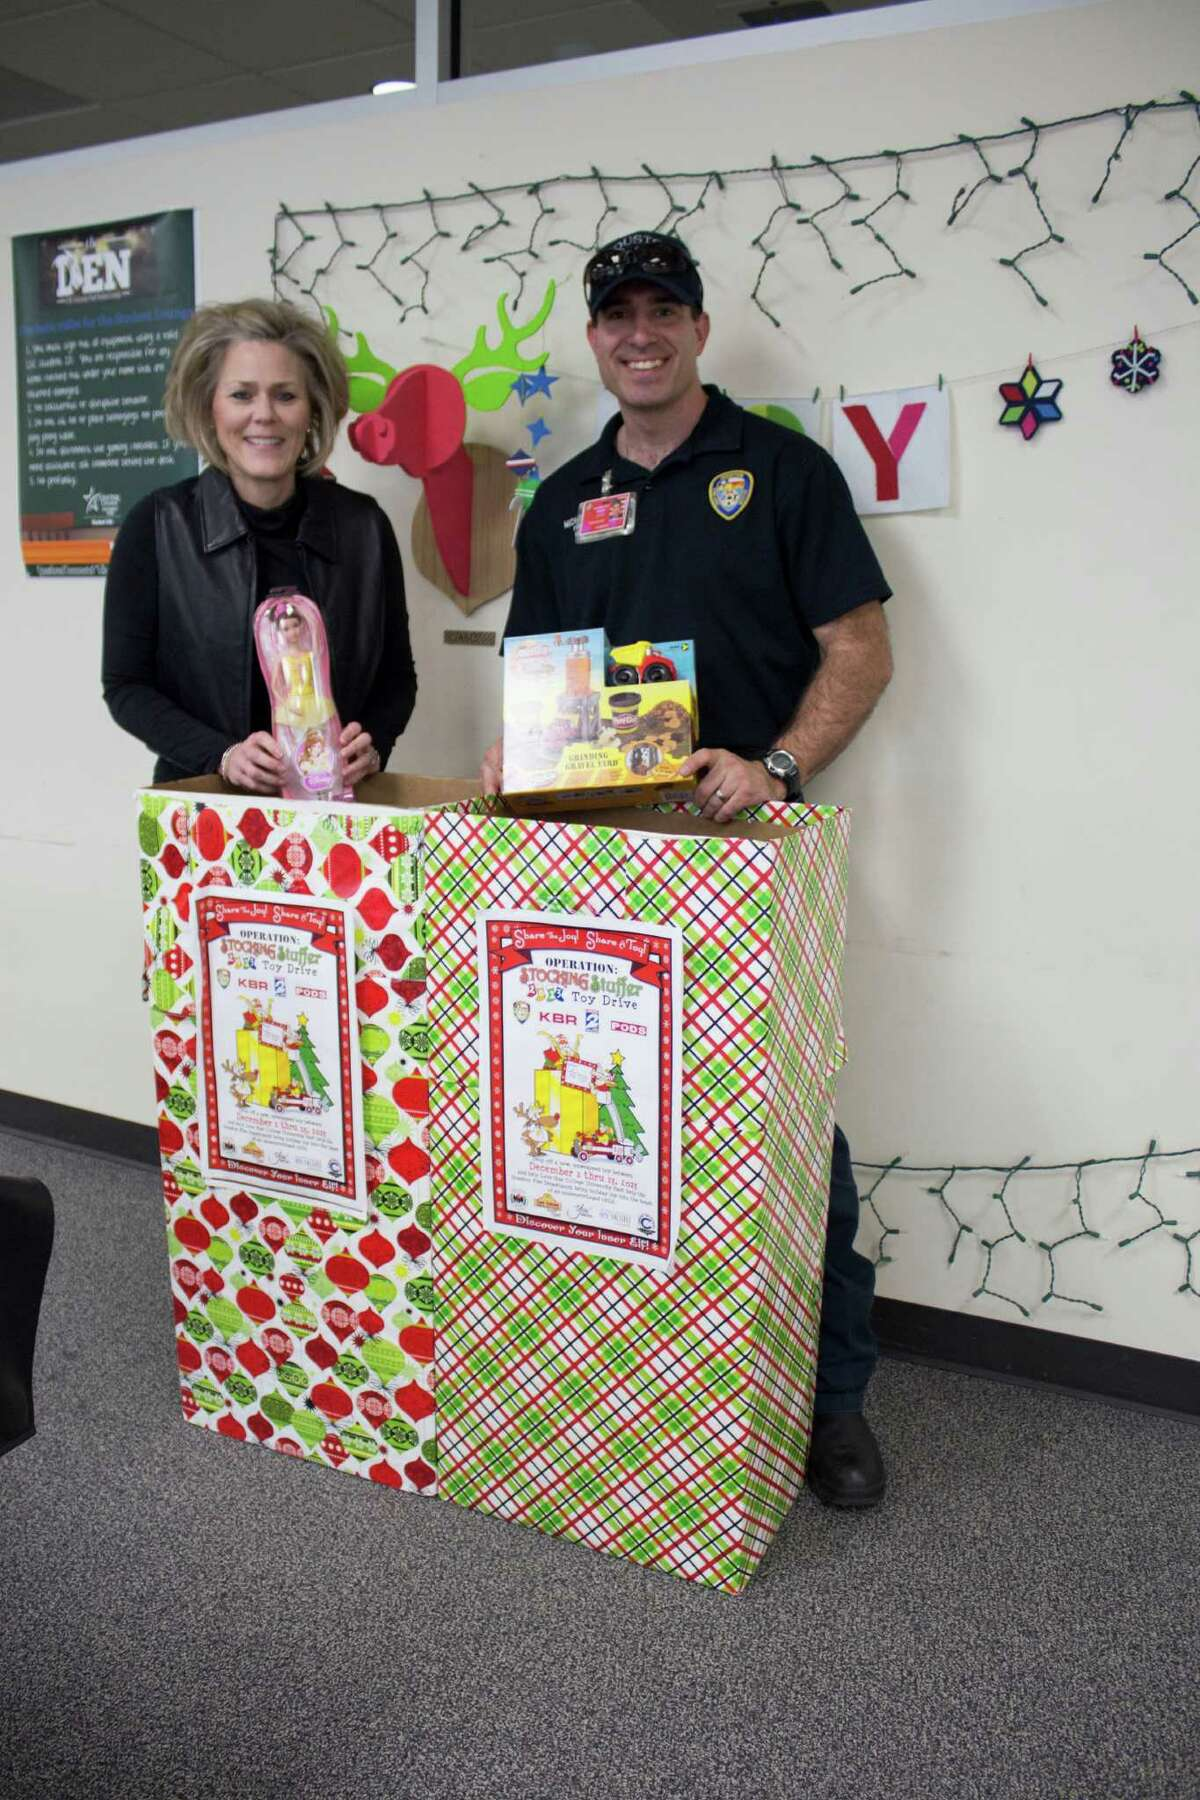 From left, Janice Straker of Lone Star College University Park and Mike Spratt of the Houston Fire Department show toys collected during Operation Stocking Stuffer.